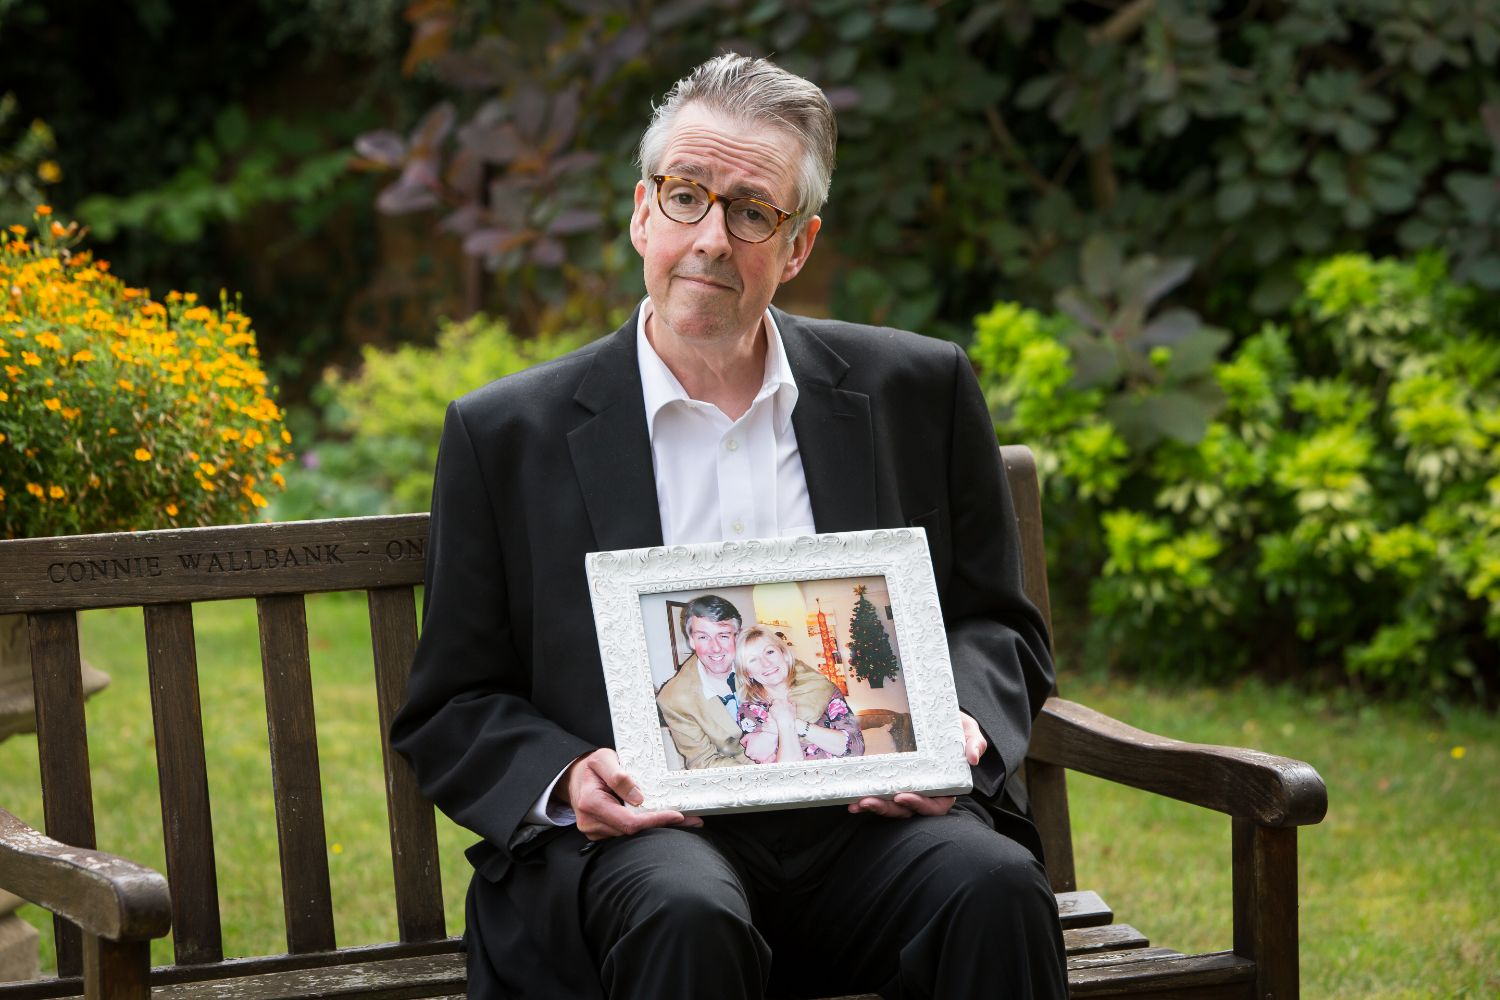 Priest tells heartbreaking story to support Katie's Appeal